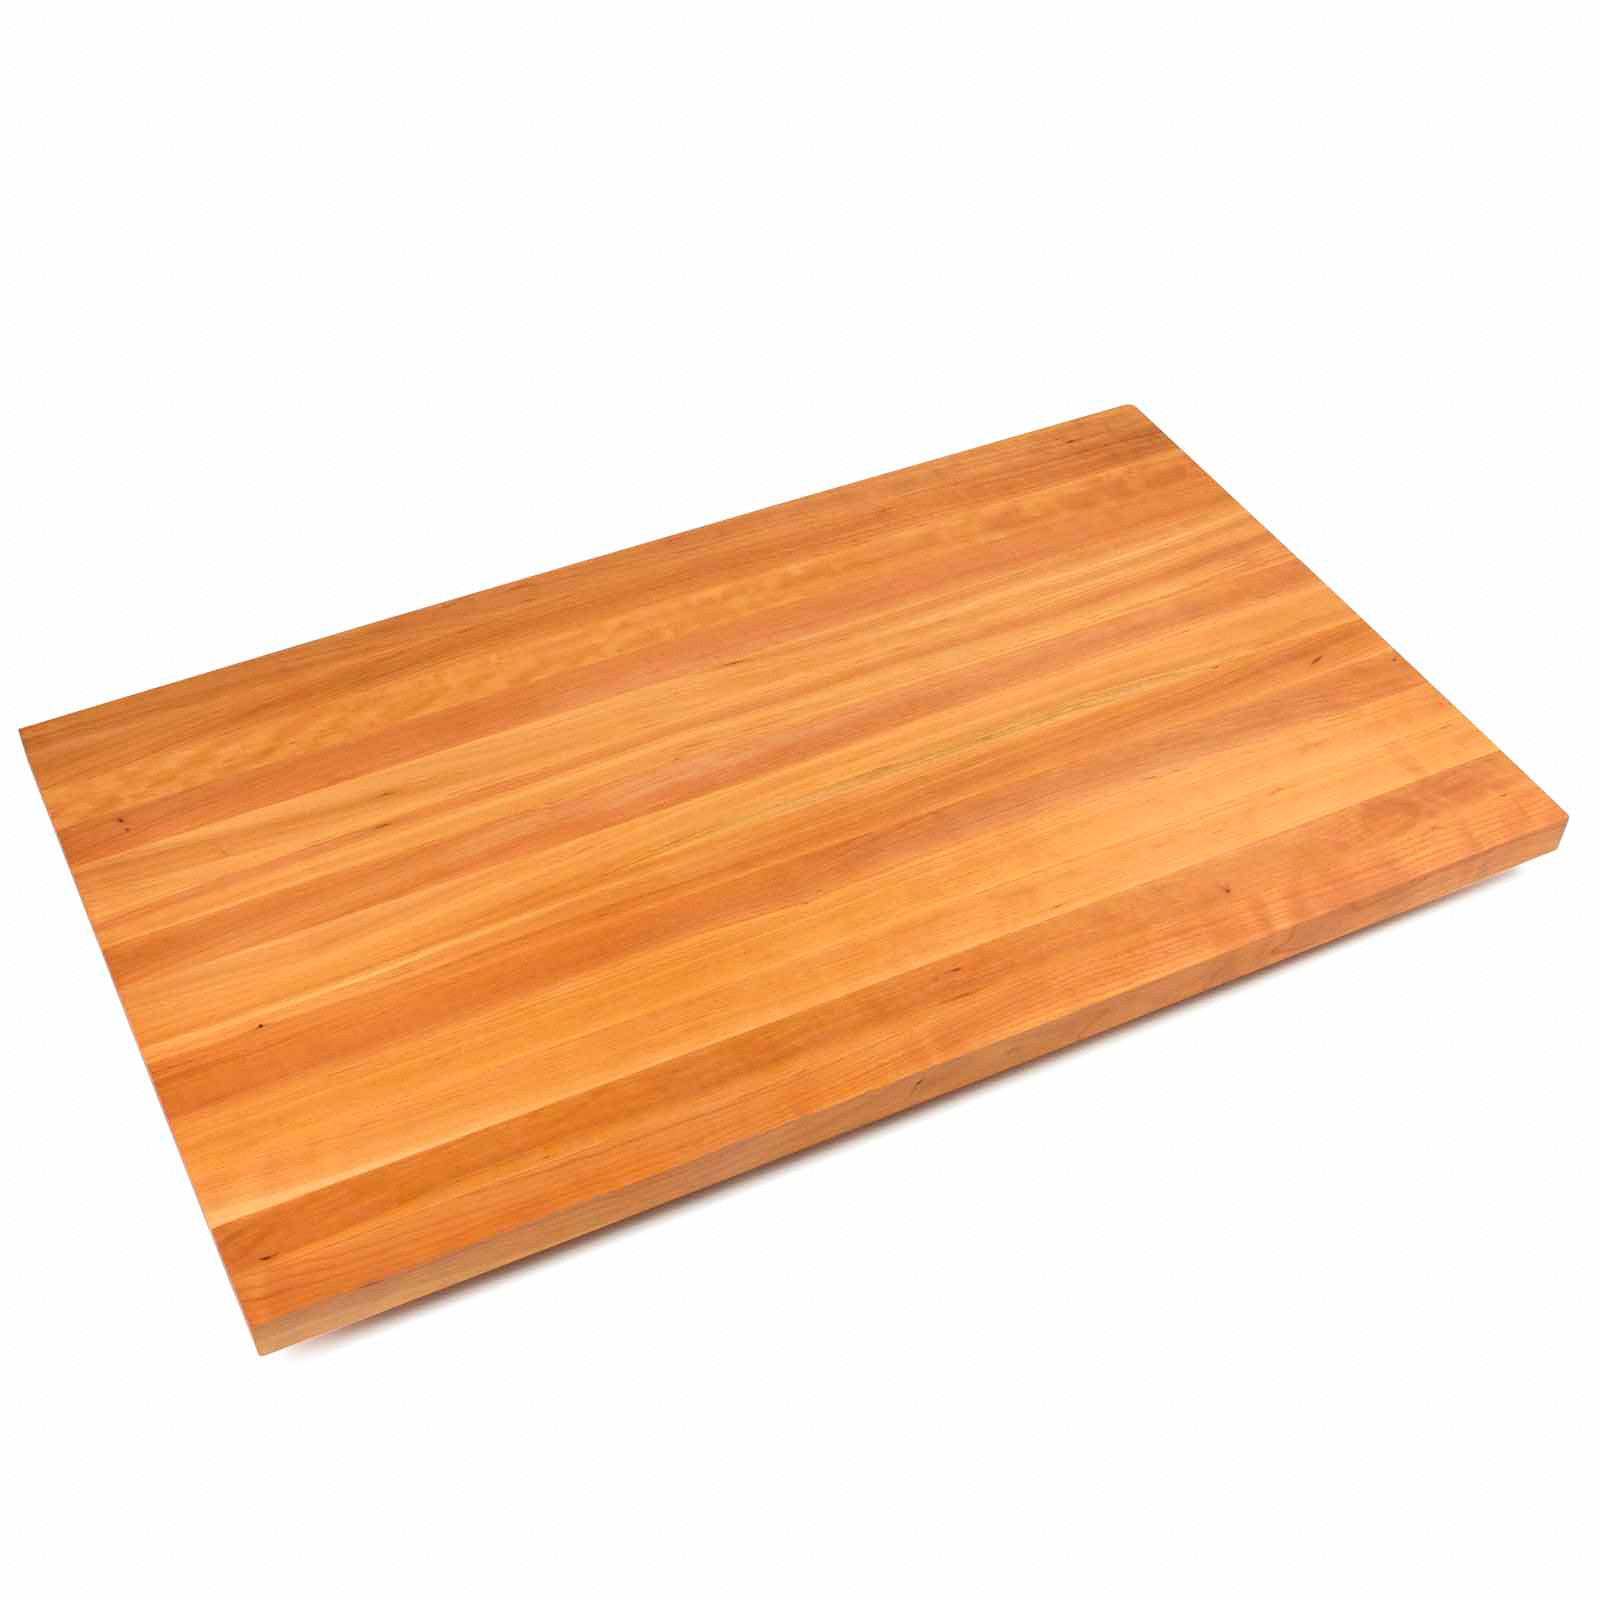 "John Boos 1 1/2"" Thick Edge Grain Cherry Butcher Block Countertop - 36"" Wide"